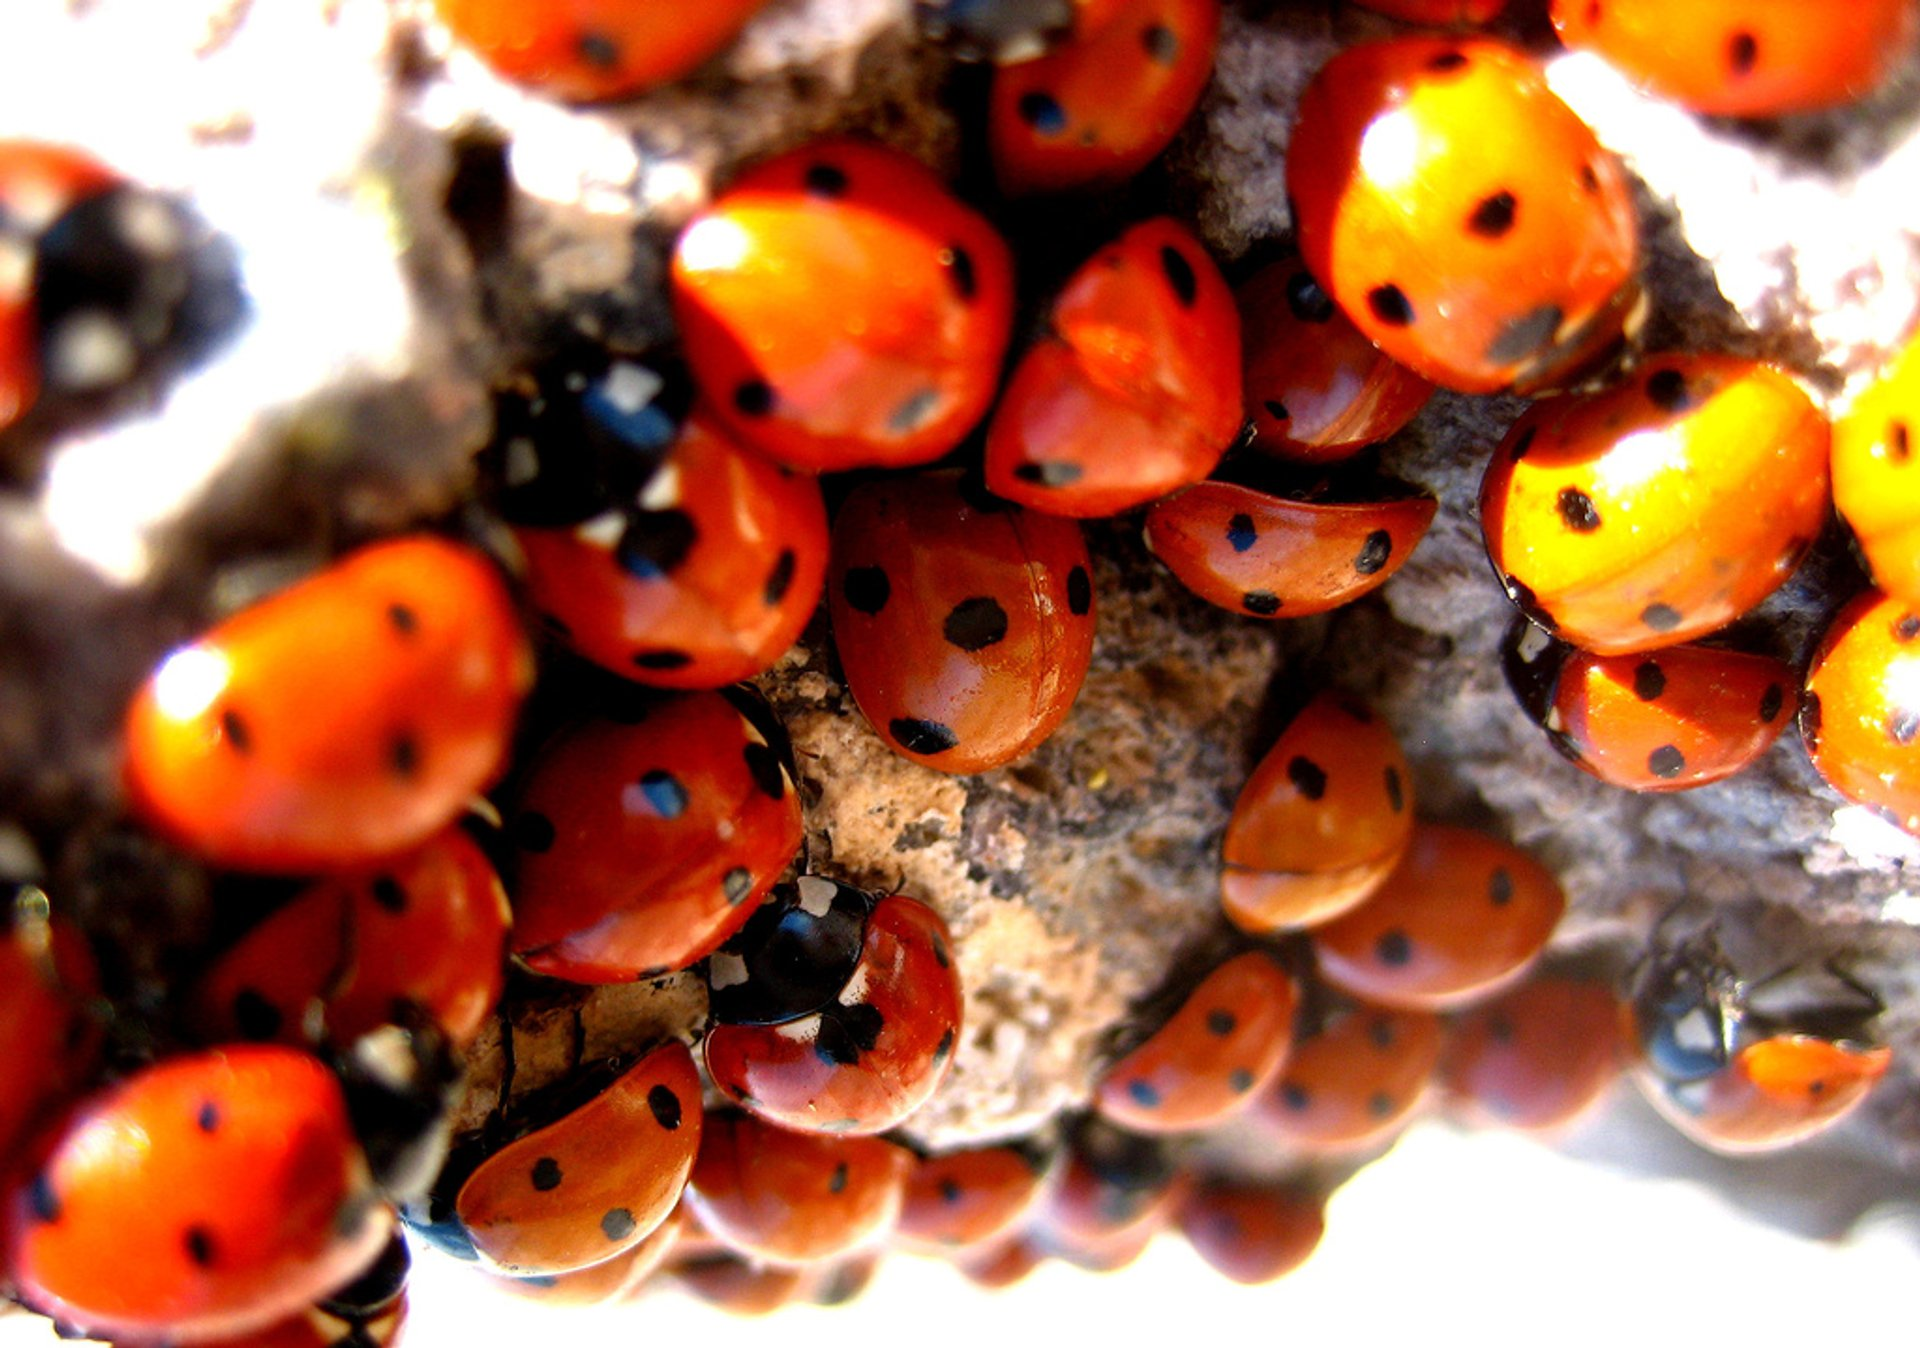 Ladybugs near Salton Sea, California 2020